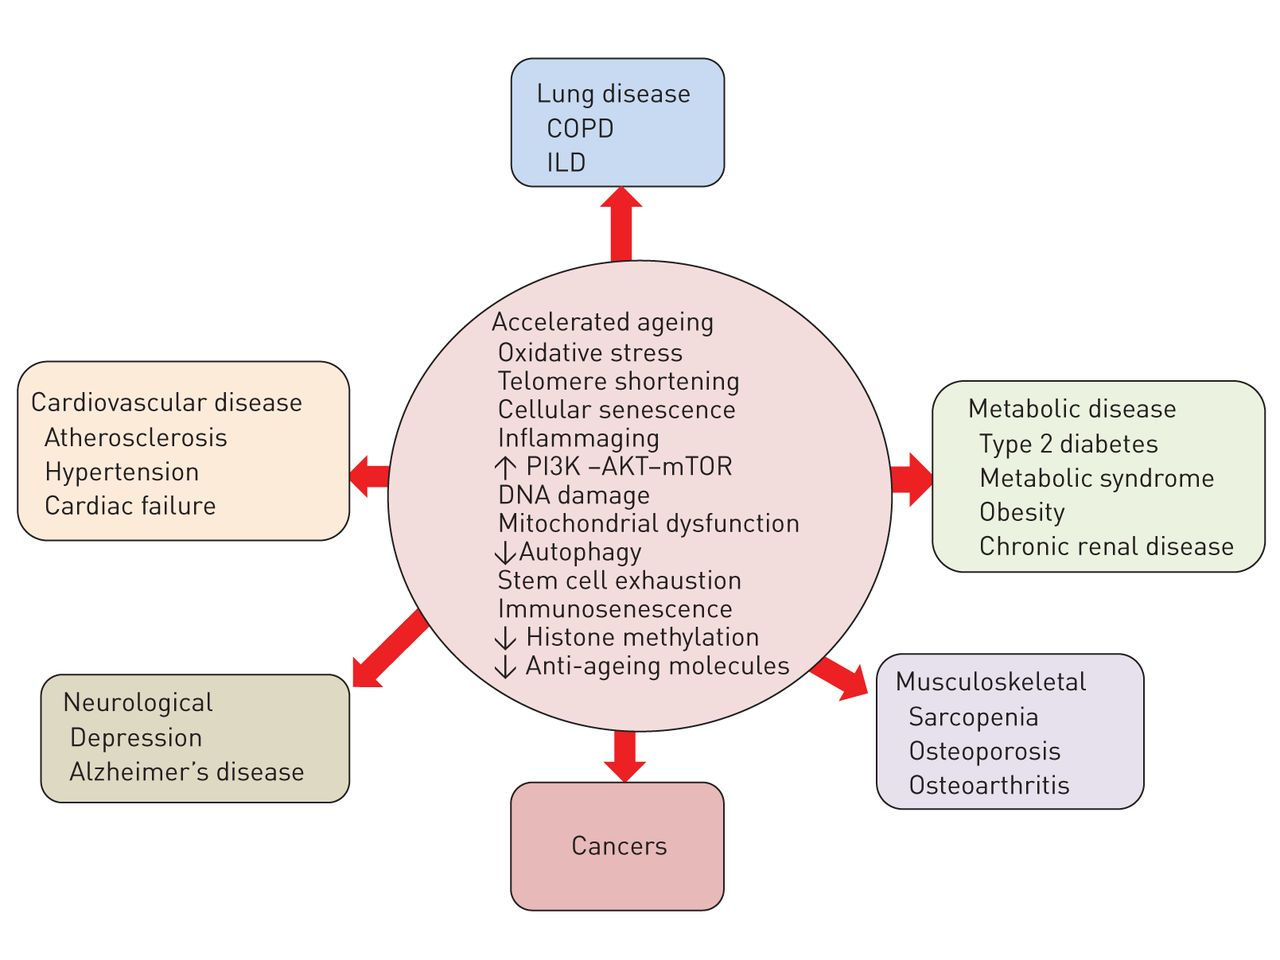 control mechanism s powerpoint Recognition of pathogens and effector mechanisms iii  if the innate immune  response cannot control and eliminate pathogens it initiates and.